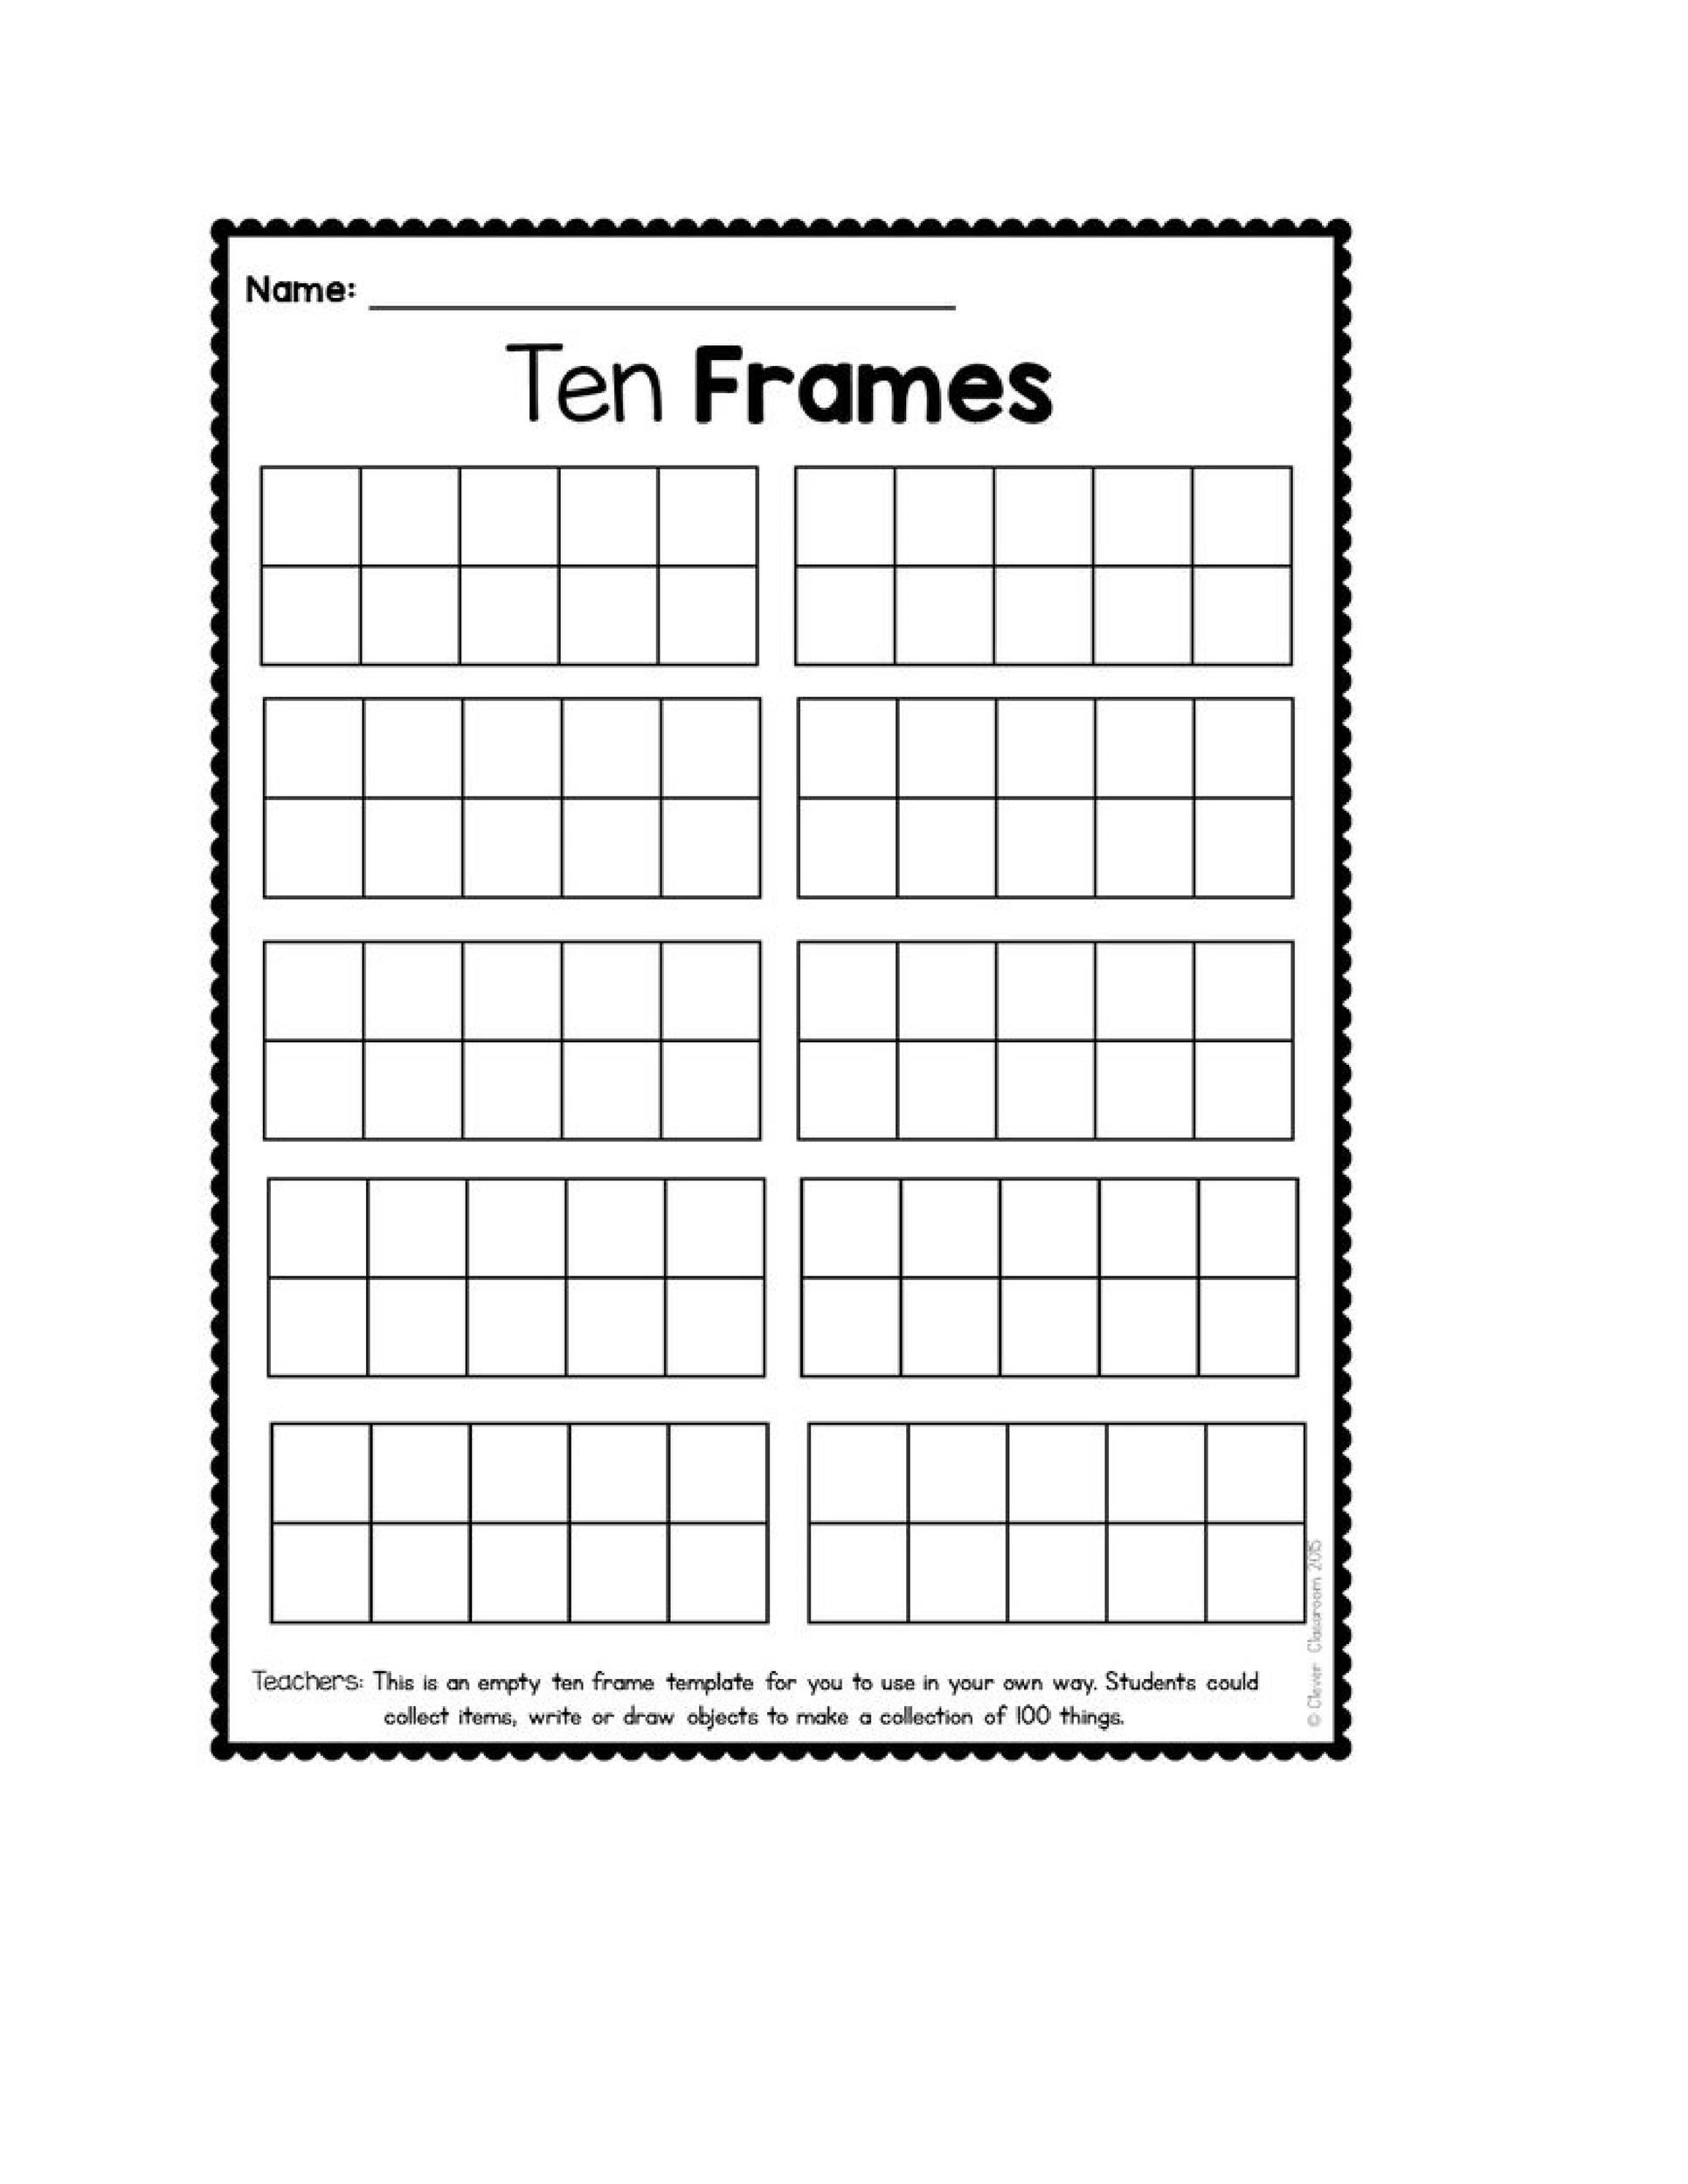 36 printable ten frame templates free template lab for 10 frame template printable